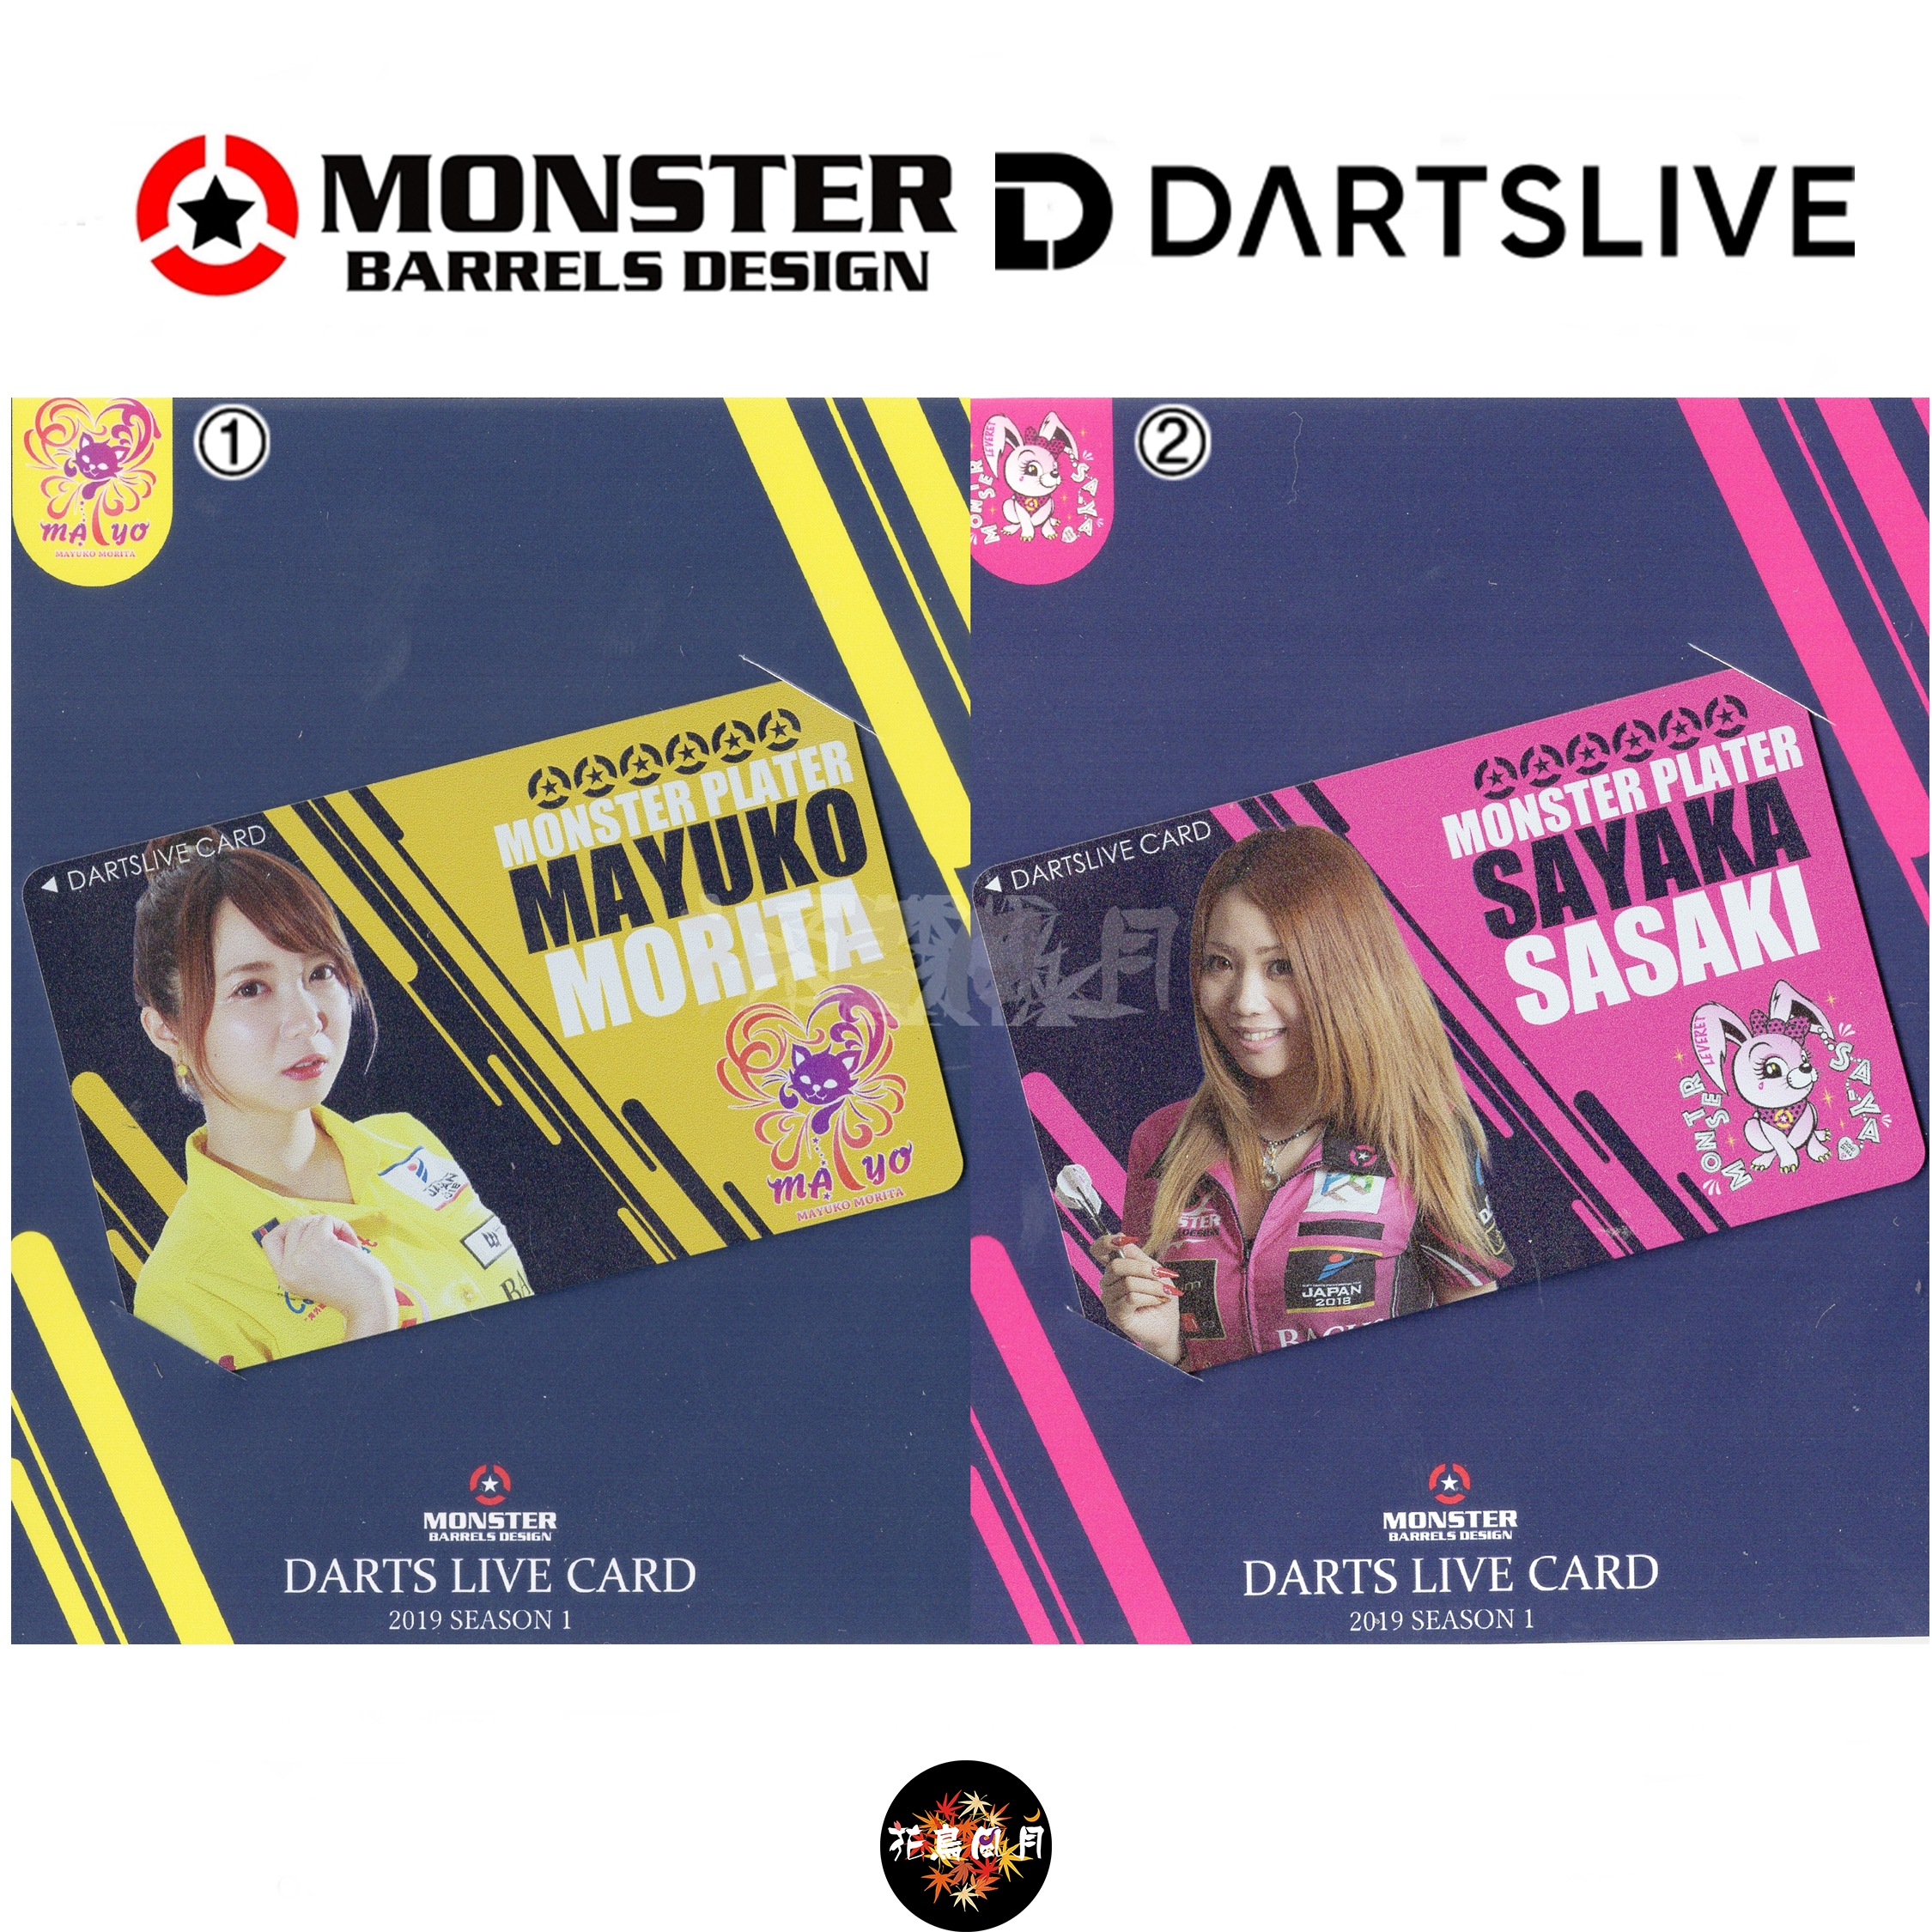 Dartslive-Card-Monster-Officialplayers-2019season1